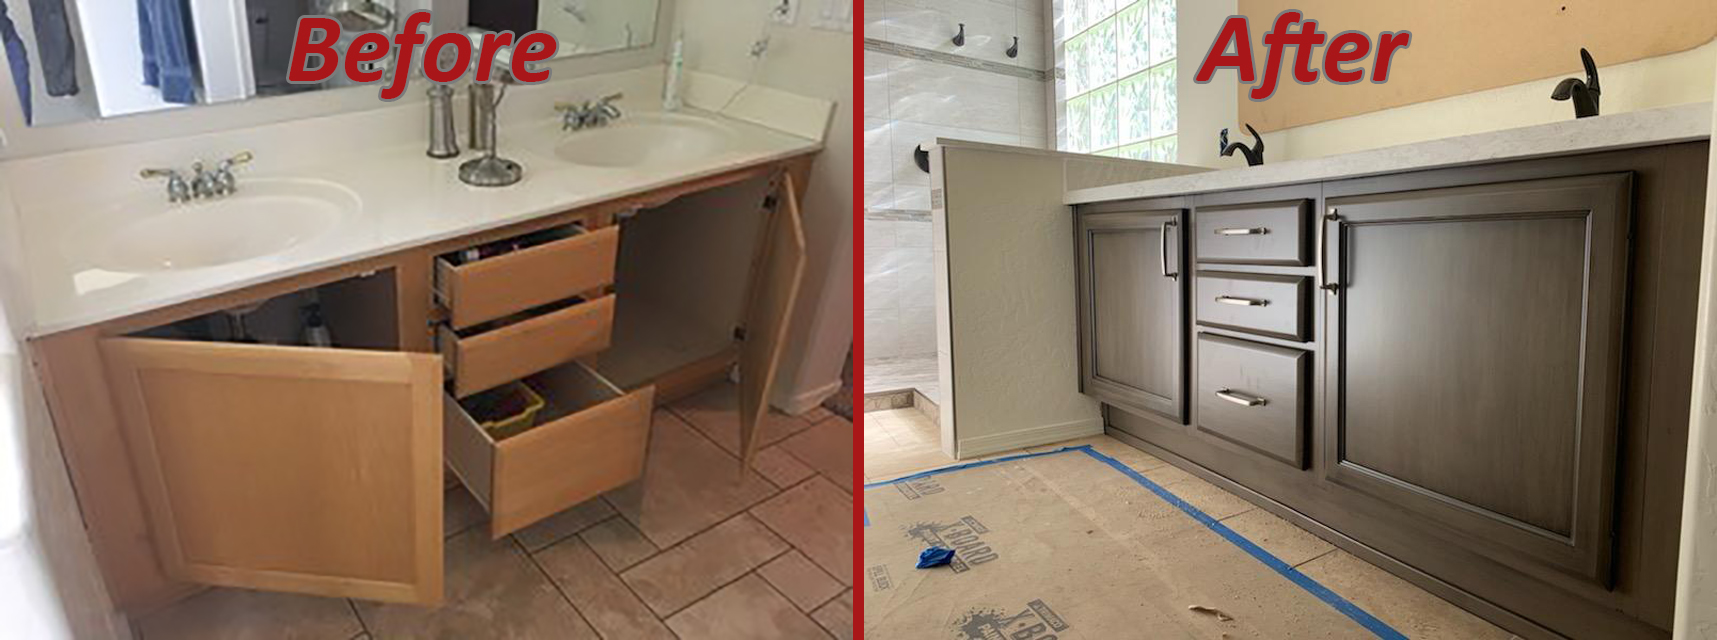 before and after bathroom remodel double vanity sink transitional style in dark wood stain